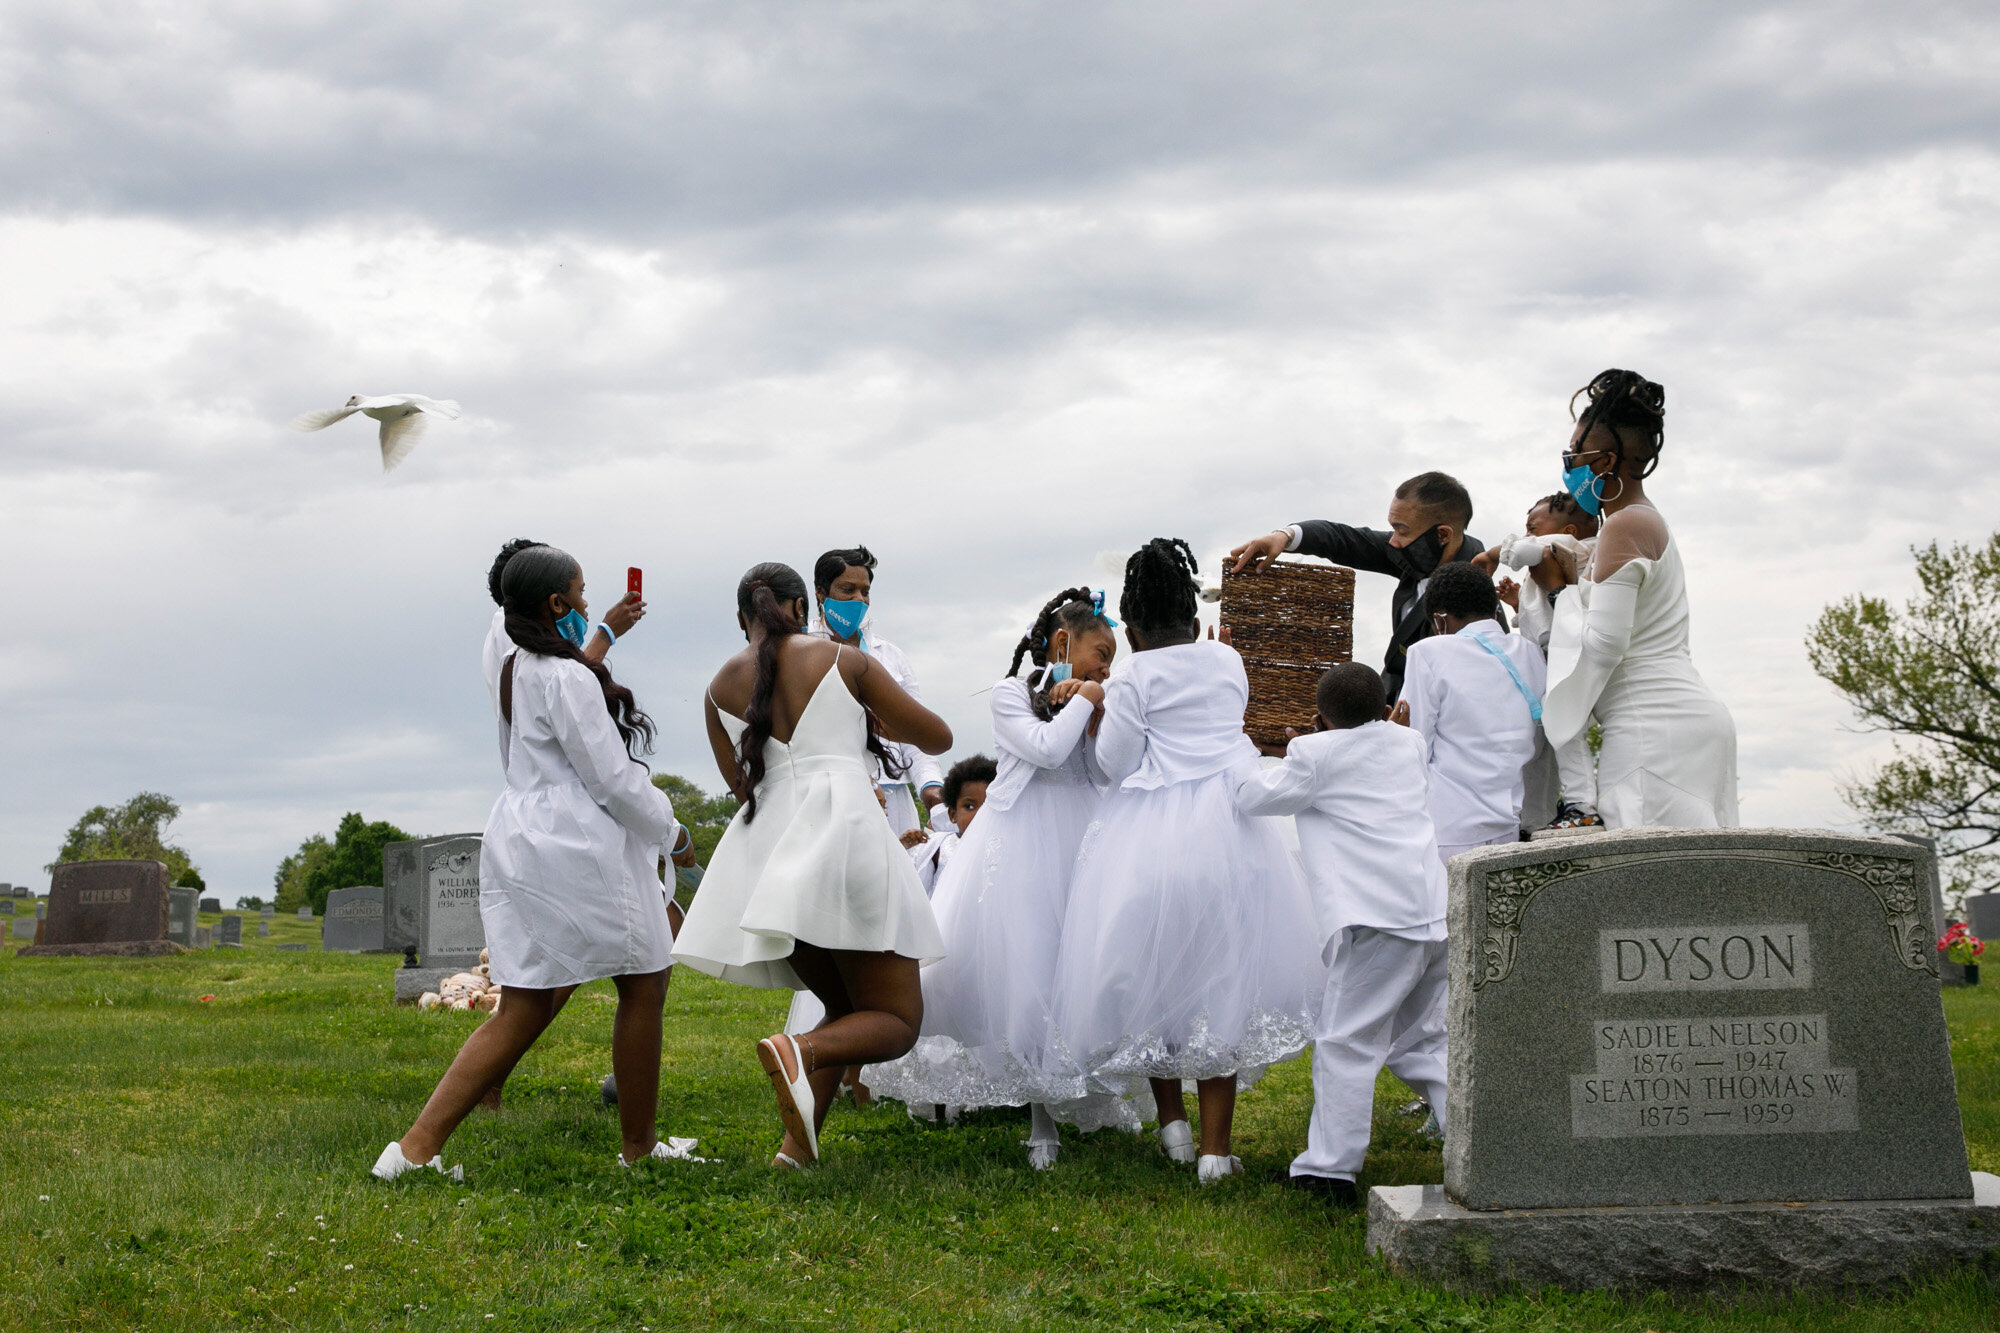 Grandchildren of Joanne Paylor, of southwest Washington, react to doves released during the interment ceremony for Paylor at Lincoln Memorial Cemetery in Suitland-Silver Hill, Md. on May 3, 2020. Although Paylor did not die from the coronavirus, almost every aspect of her funeral was affected by the pandemic. (AP Photo/Jacquelyn Martin)